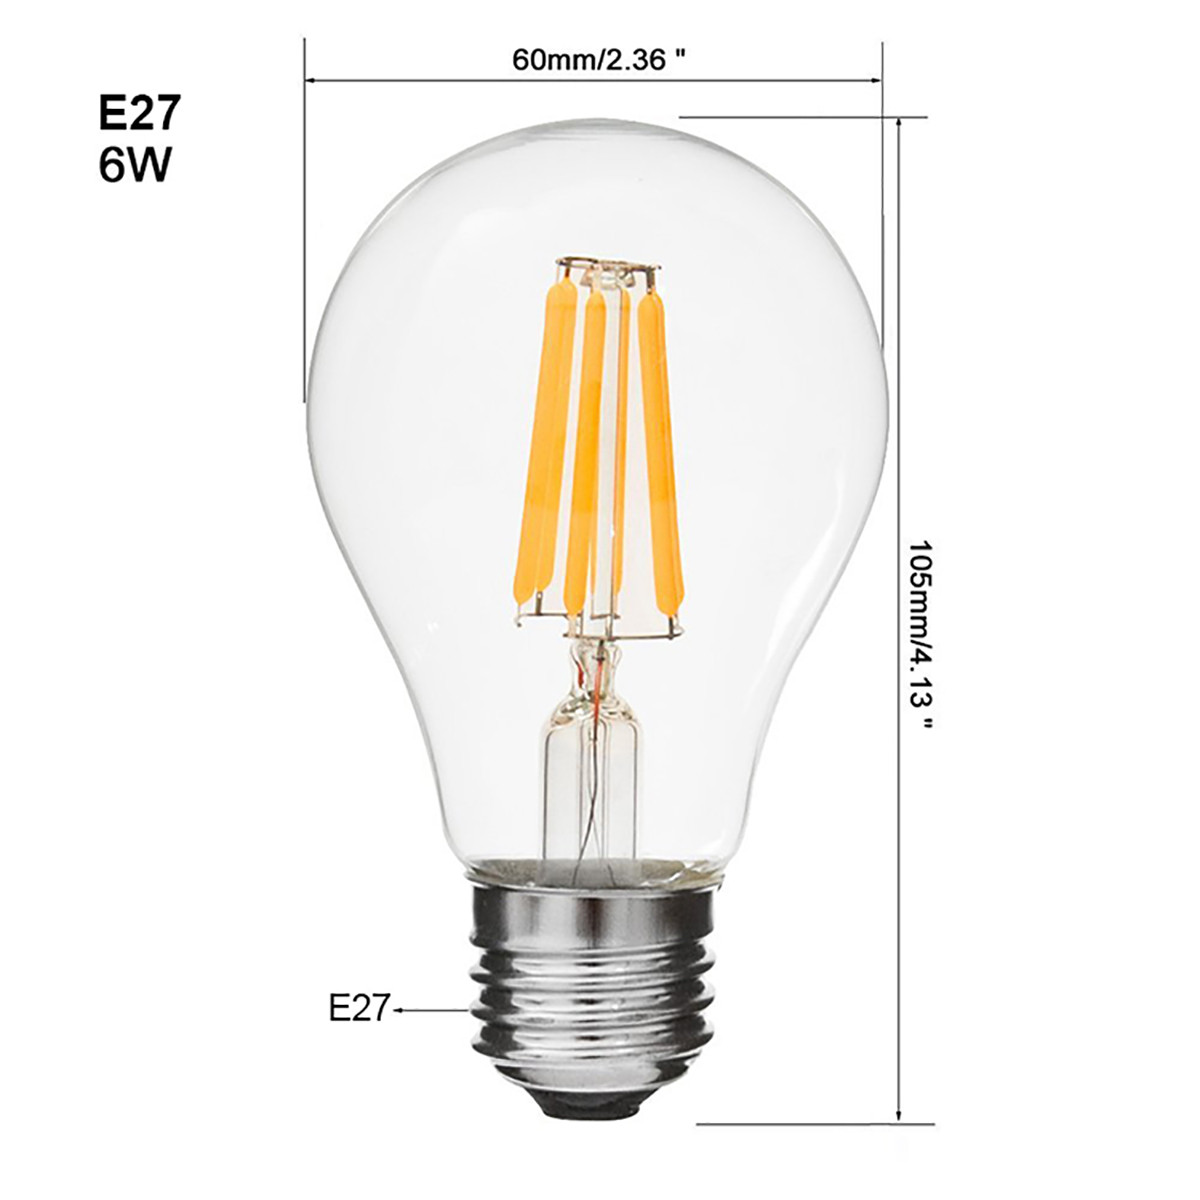 2w Filament Led Globe Light Bulb Light A60 Chandelier Bulb With E26 Base 20w Equivalent Halogen